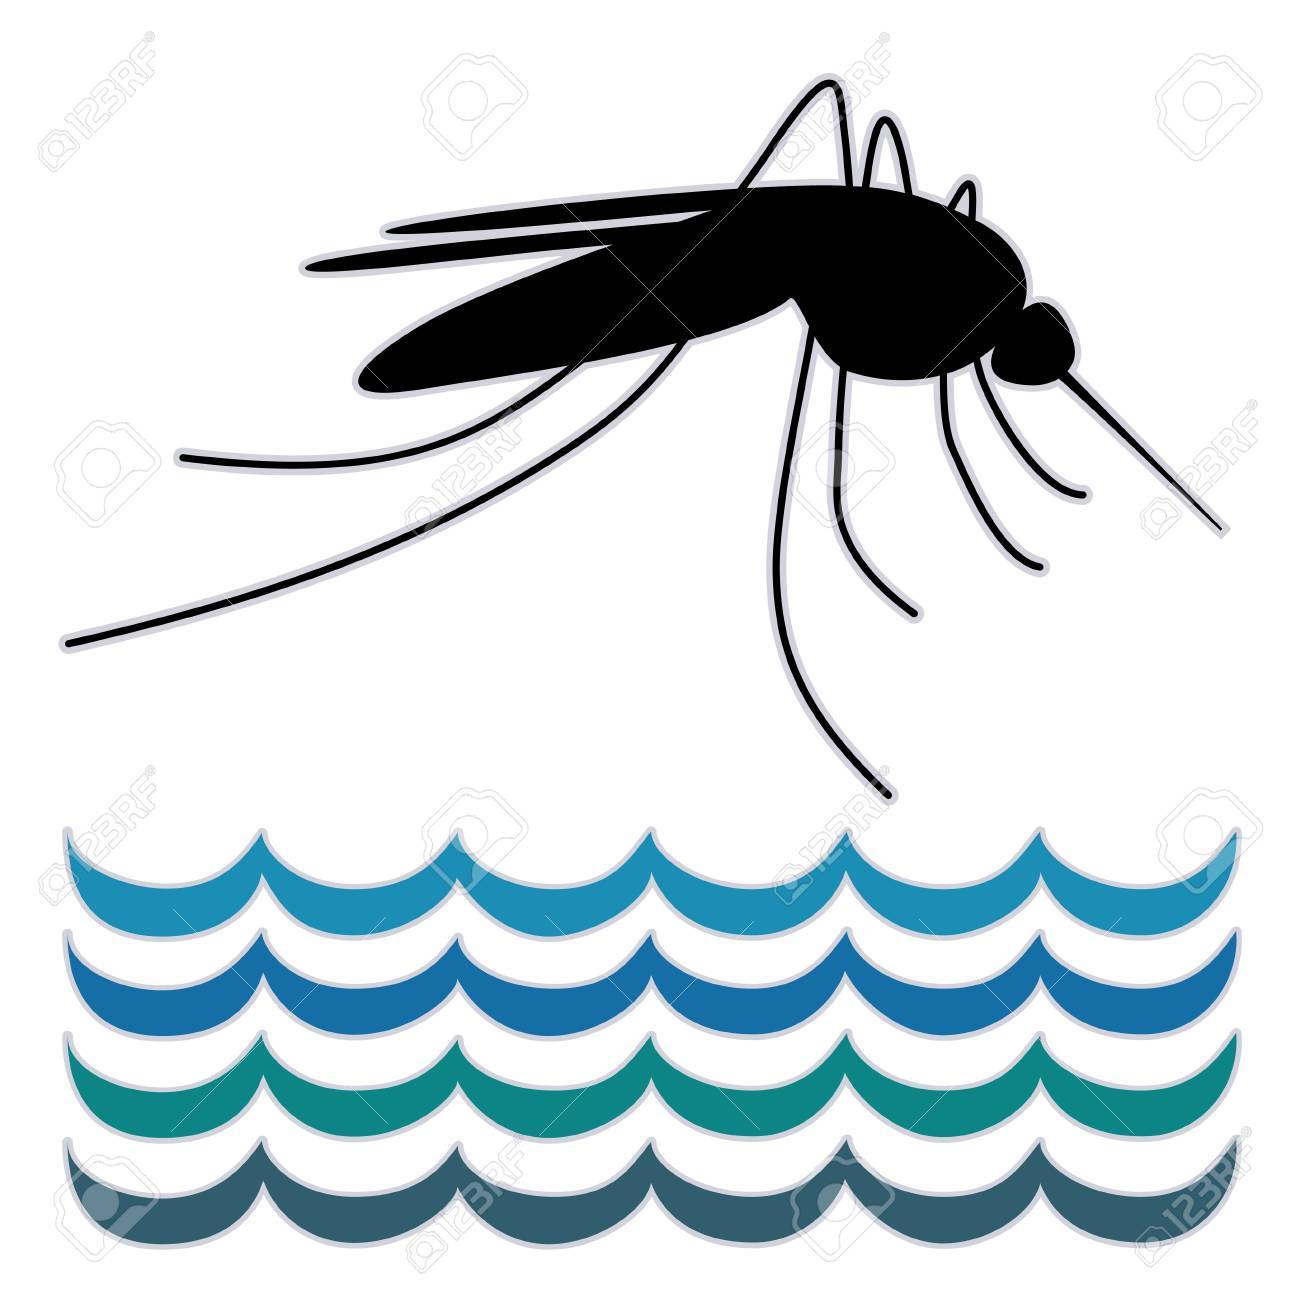 Mosquito, standing water, graphic illustration, isolated on white background Stock Vector - 16608090